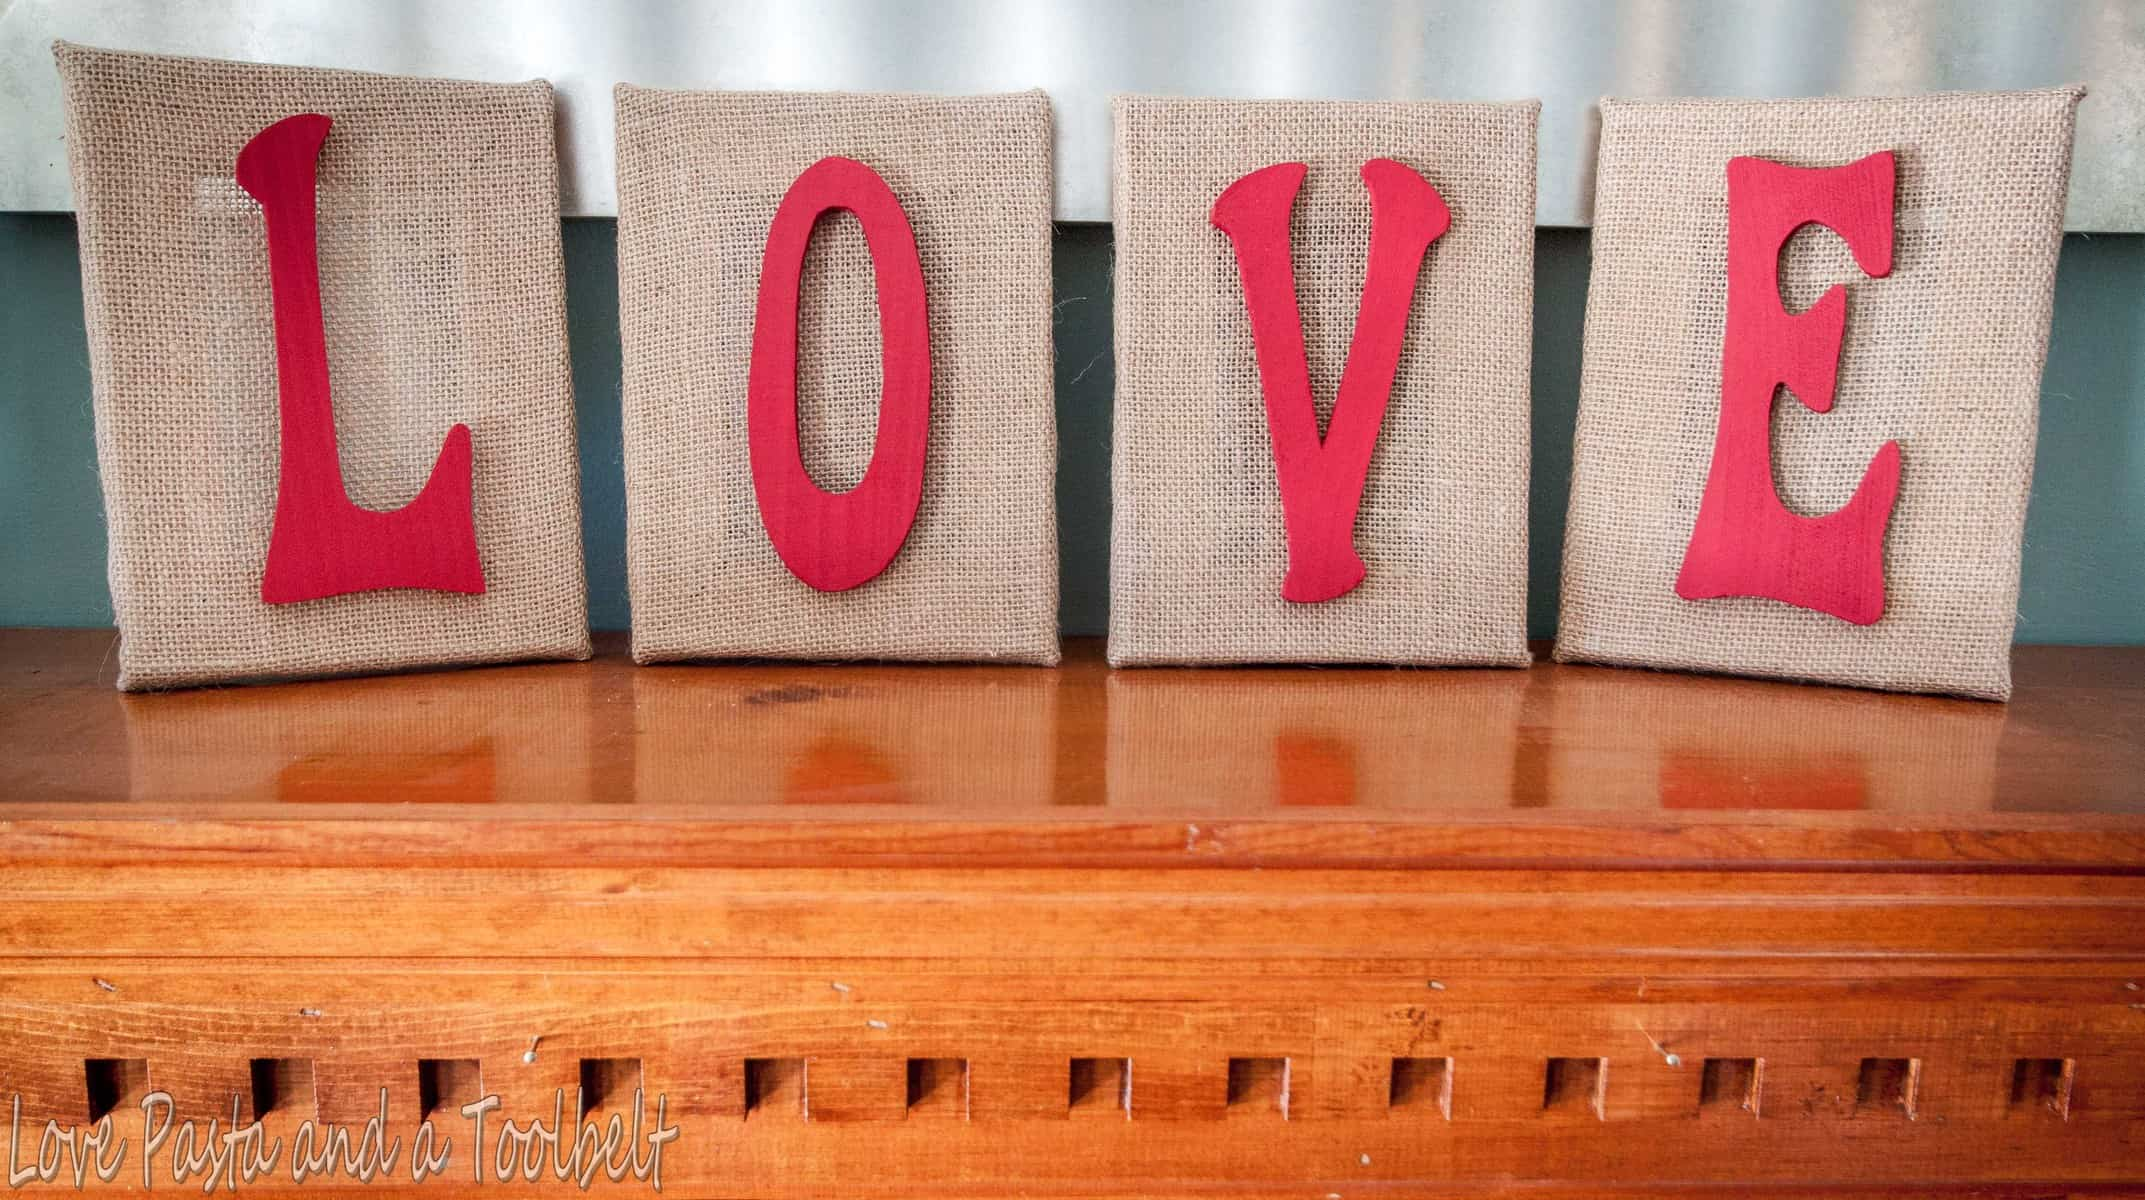 Diy burlap love letters love pasta and a tool belt - Home decorating items pict ...